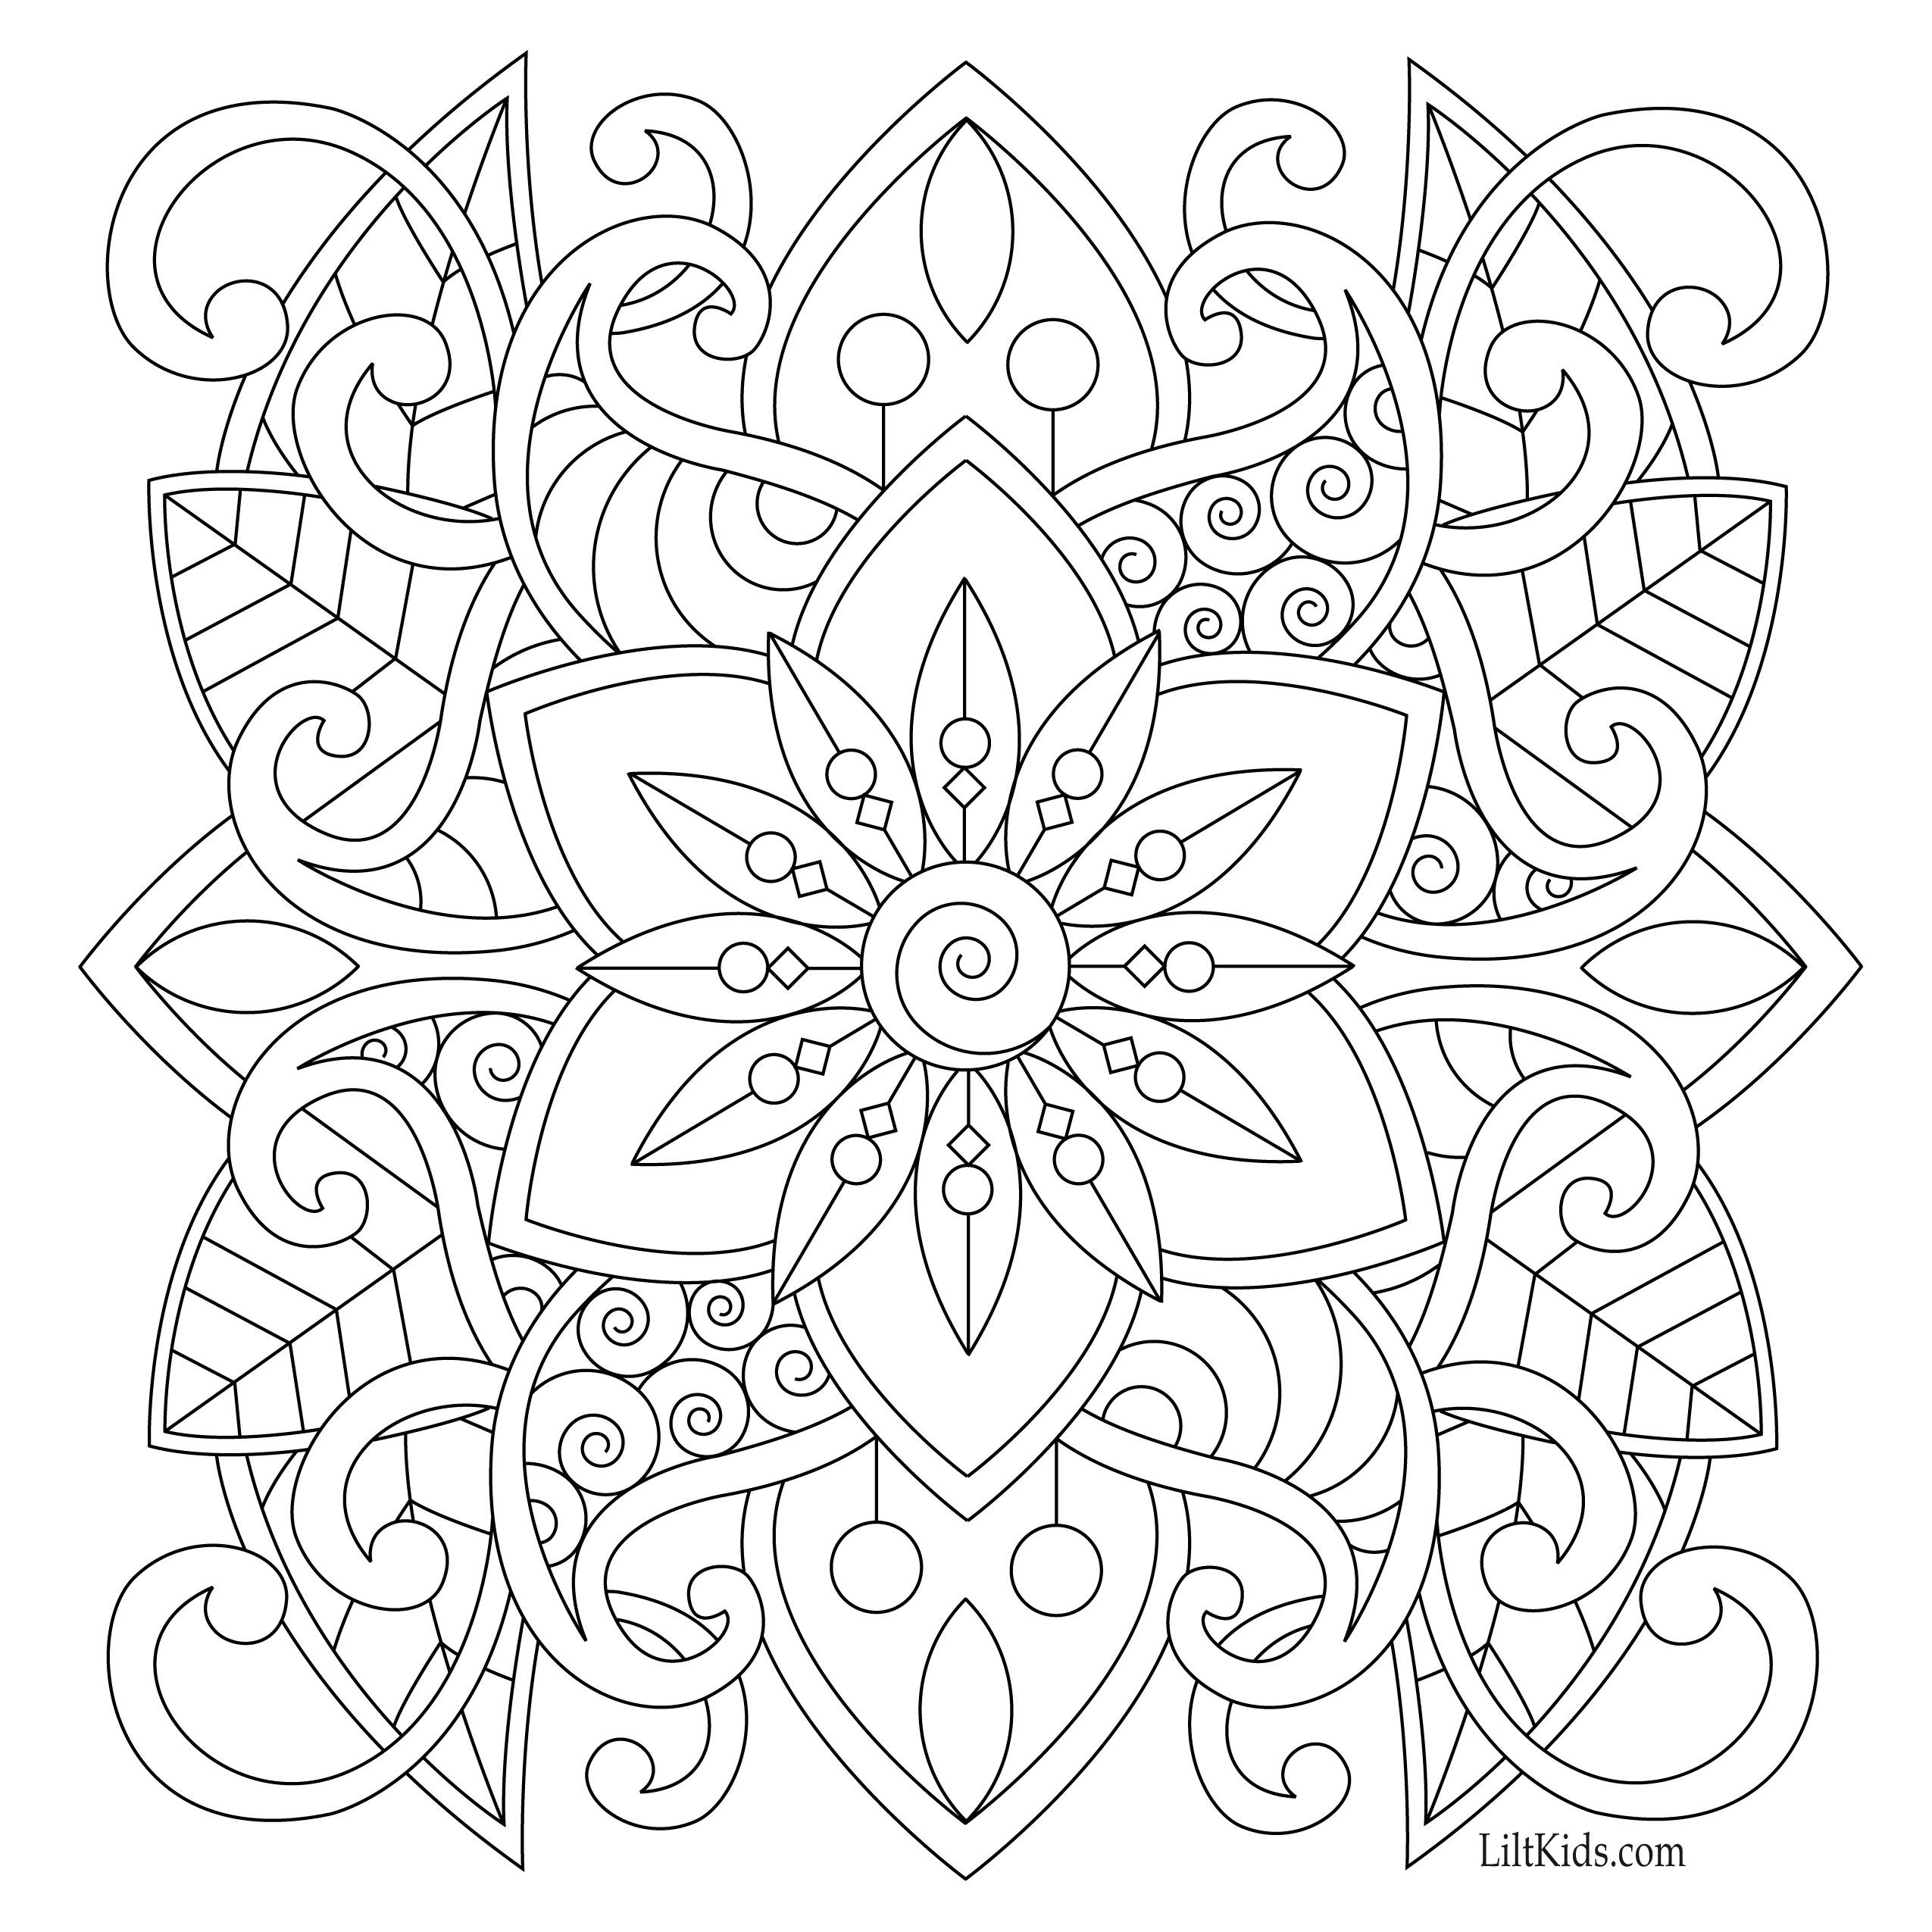 Free Easy Mandala For Beginners Adult Coloring Book Image From LiltKids See More